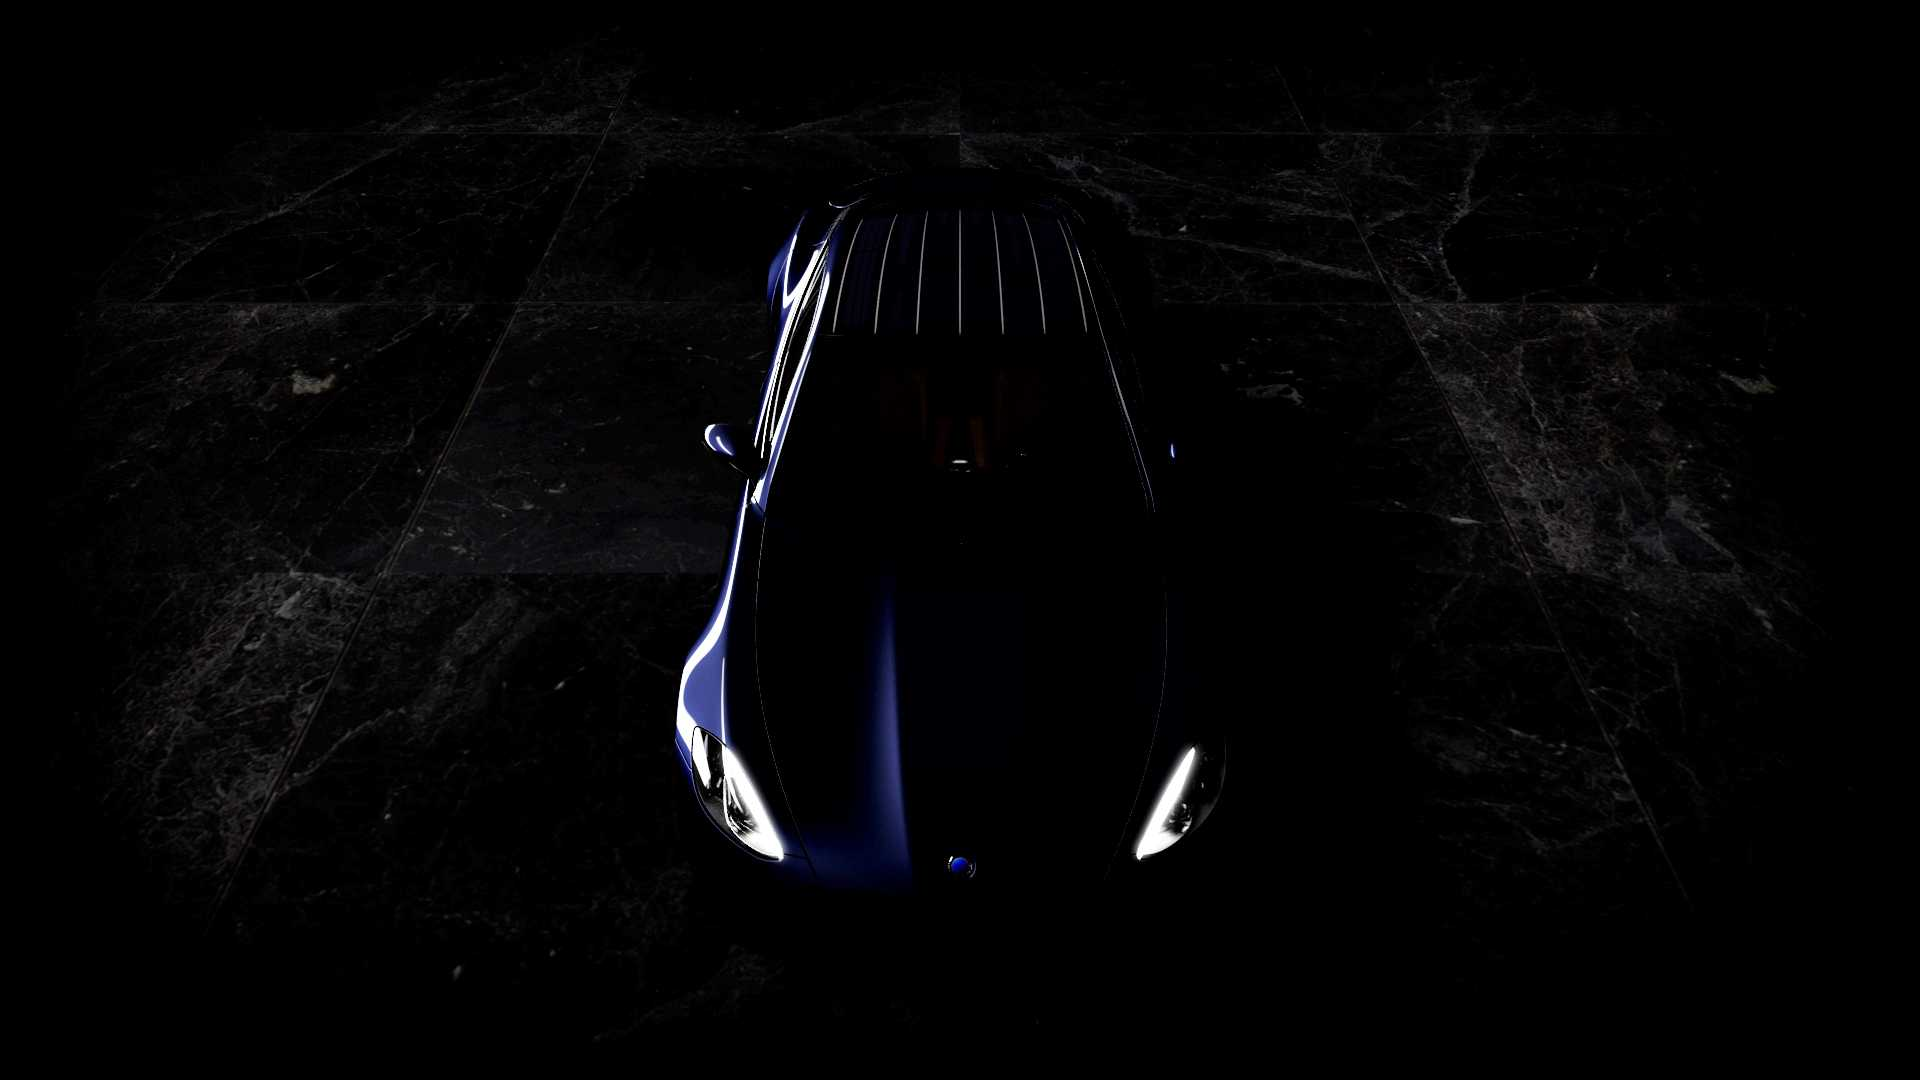 Karma Automotive has released the first teaser image showing the next generation of its Revero hybrid car